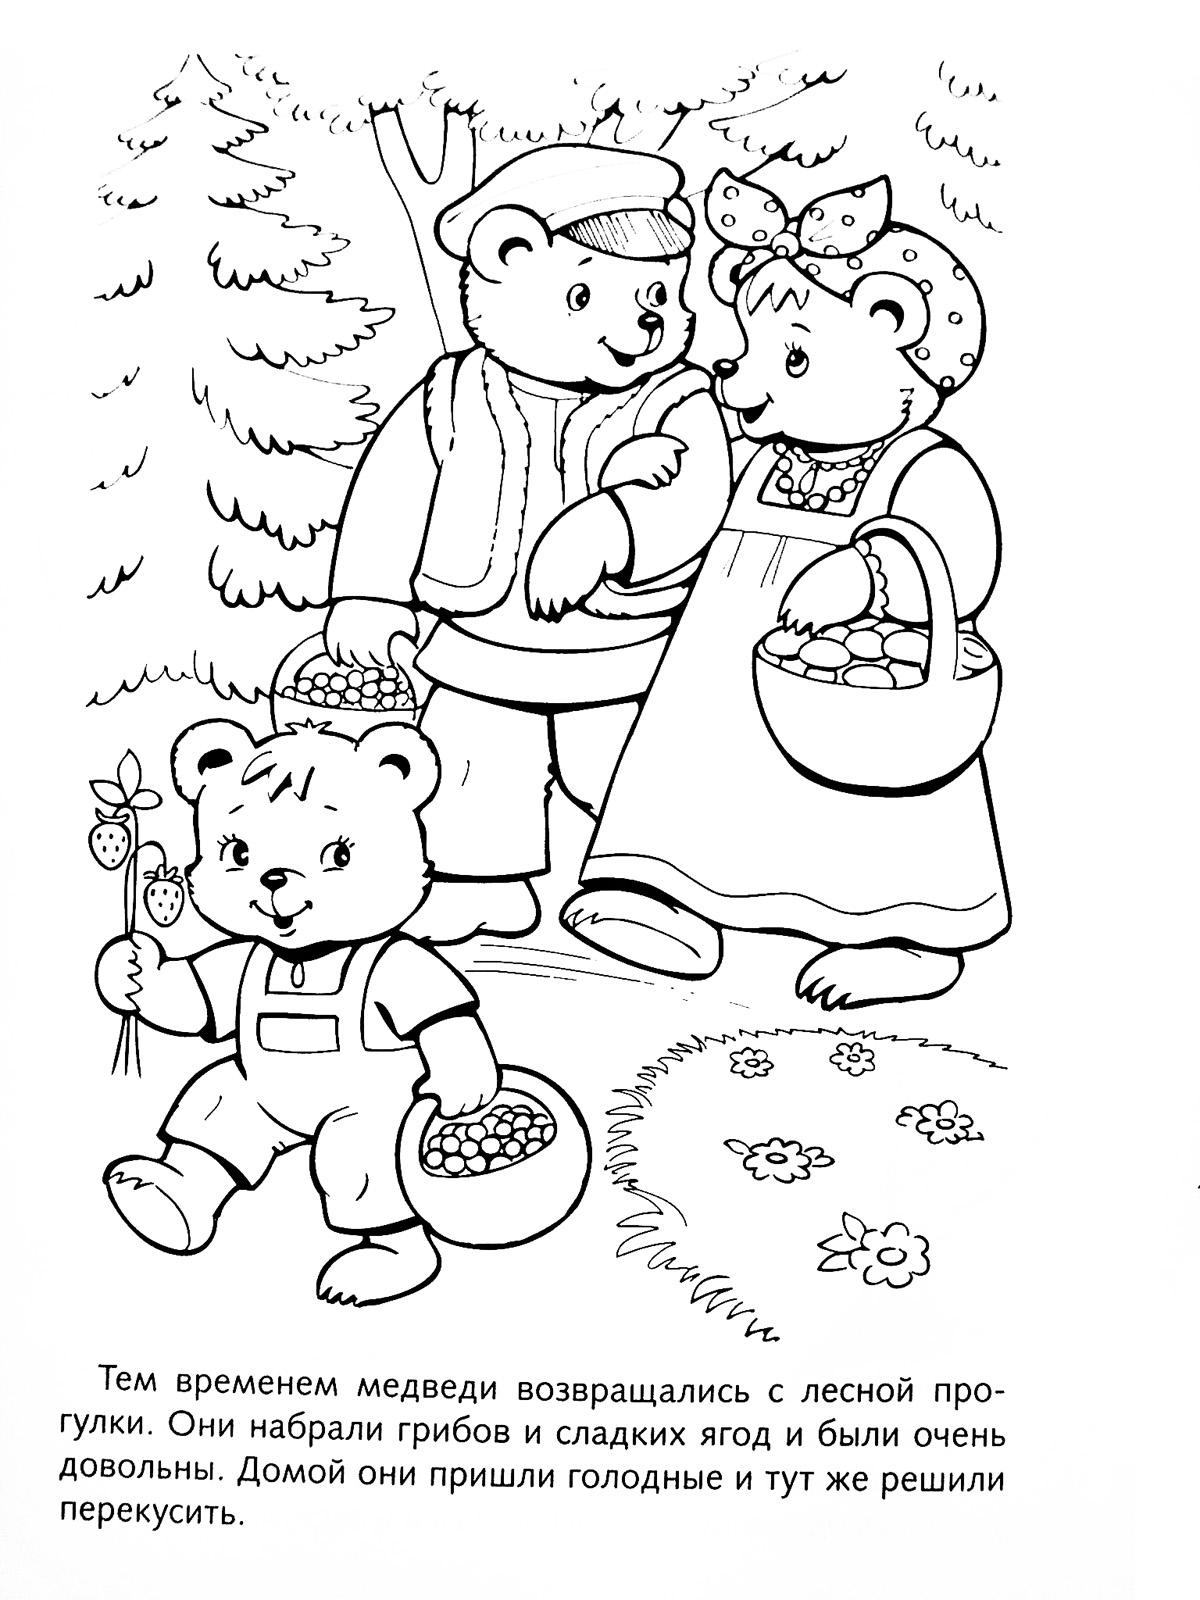 Coloring coloring pages to the tale of three bears three bears walk in the forest, a fairy tale coloring pages